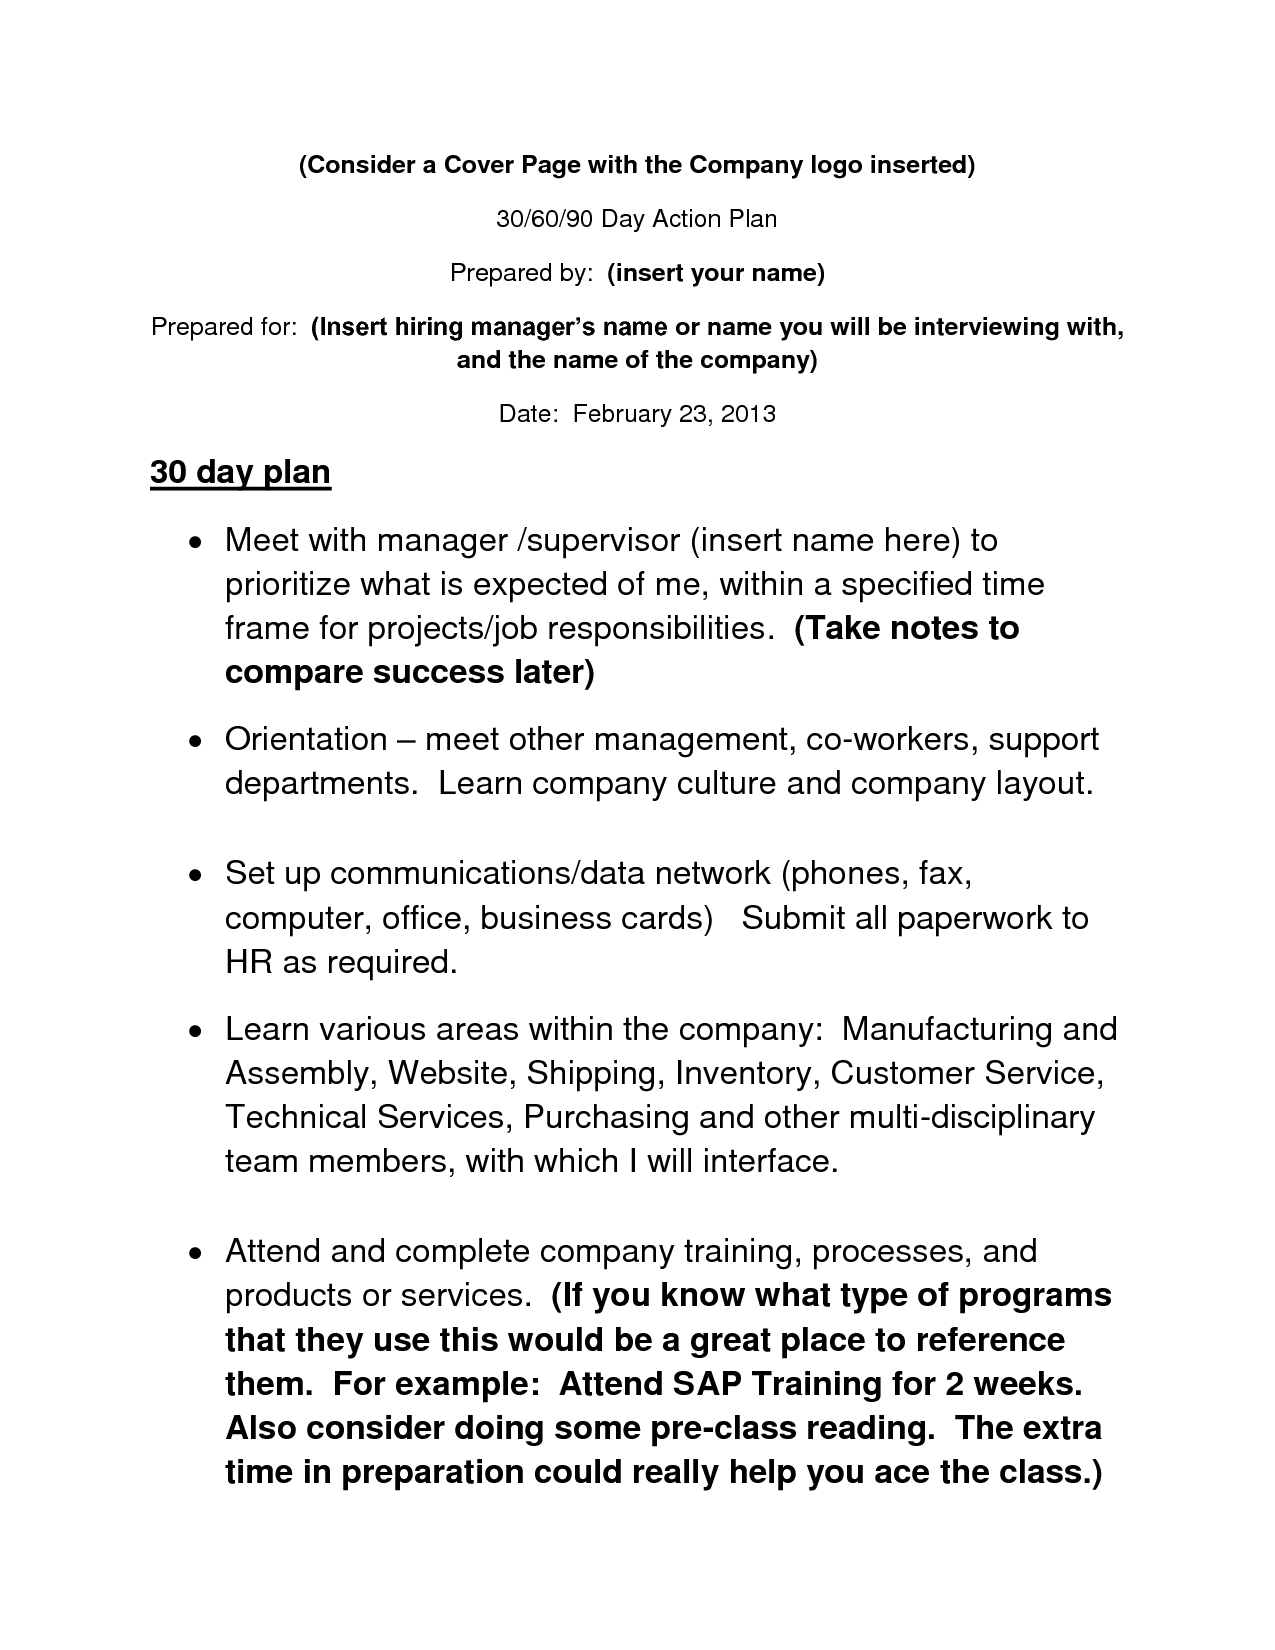 Day Action Plan Template  Info   Day Plan Business For Interview Business Plan Template